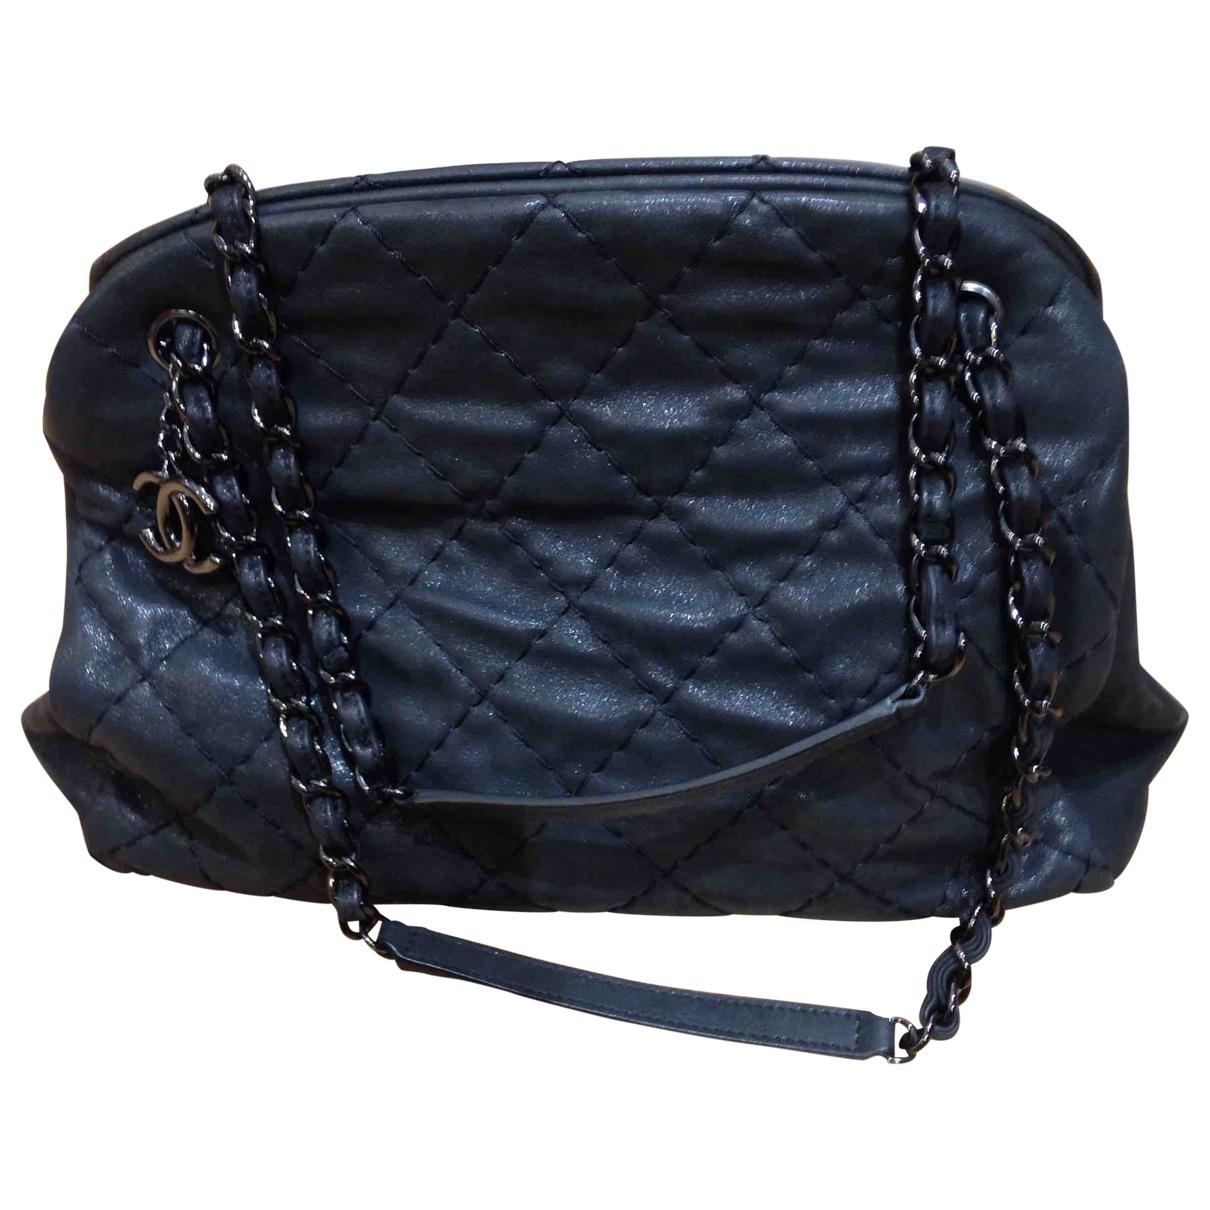 b8d047c941ef Pre Owned Chanel Crossbody Bags For Sale | Stanford Center for ...